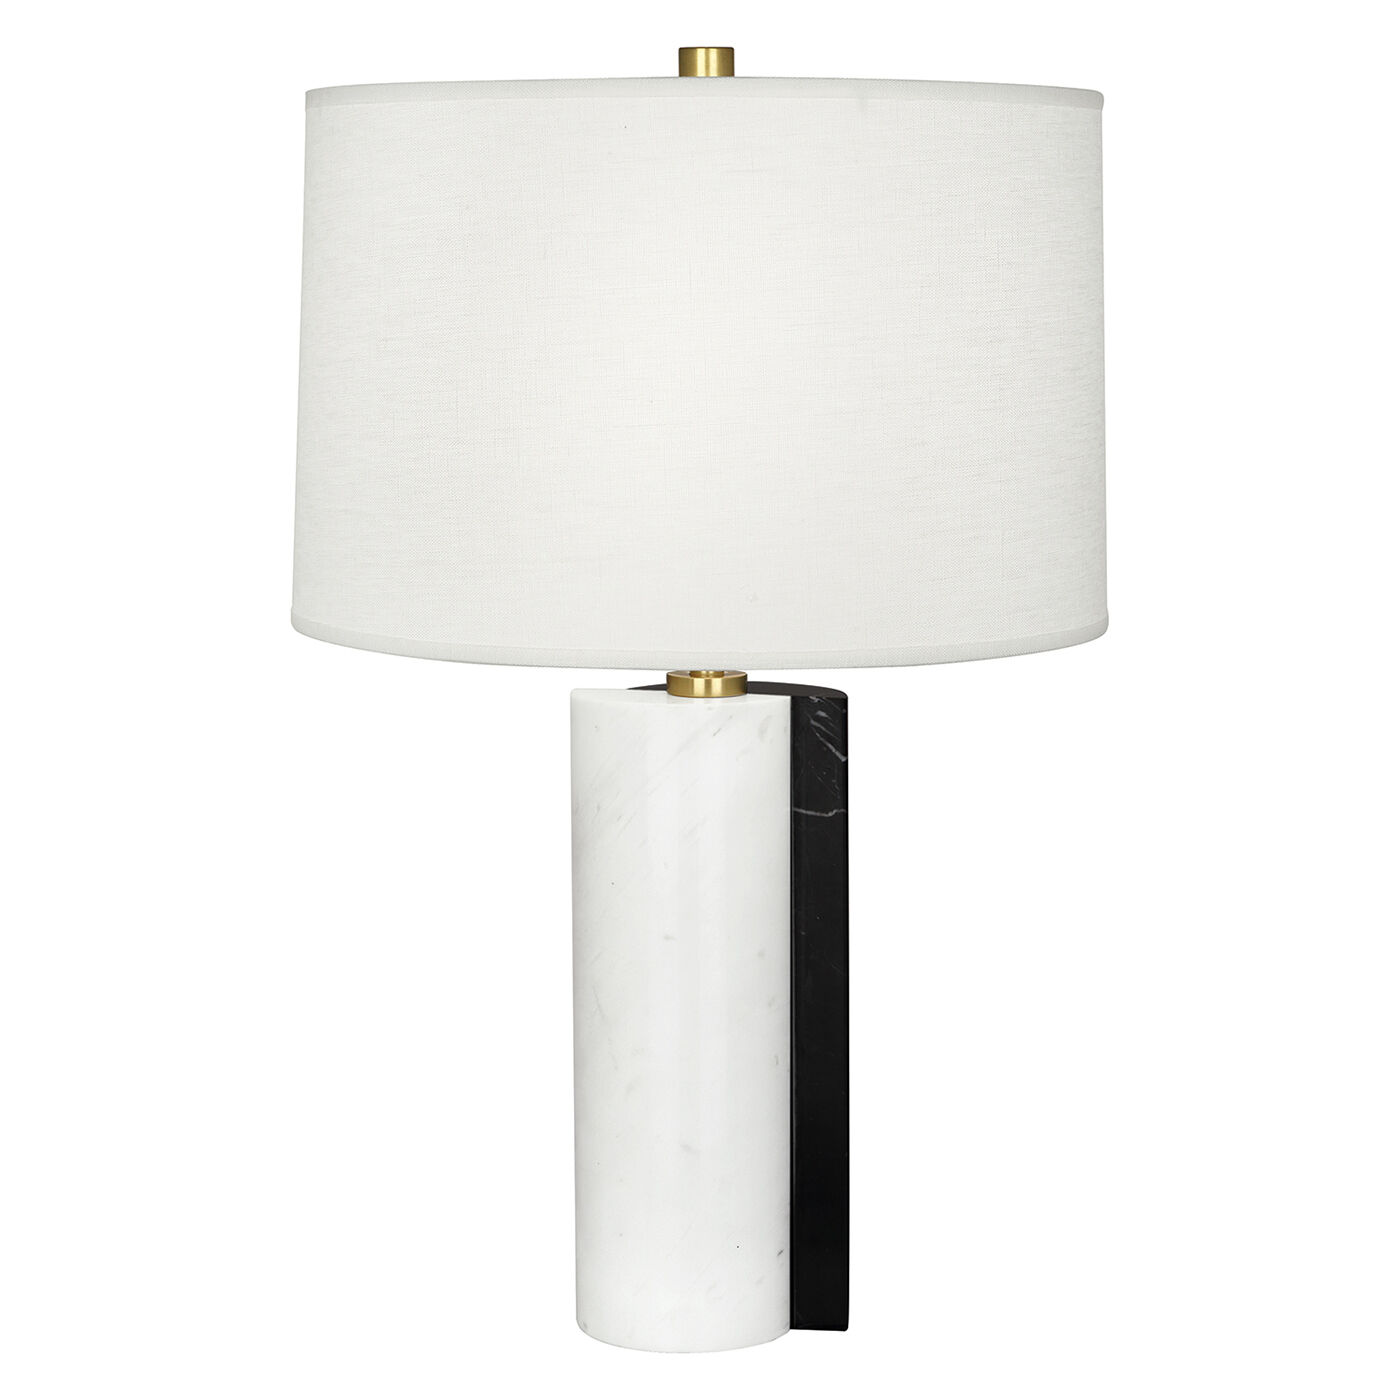 Canaan Shift Marble/WhiteTable Lamp   Modern Table Lamps ...